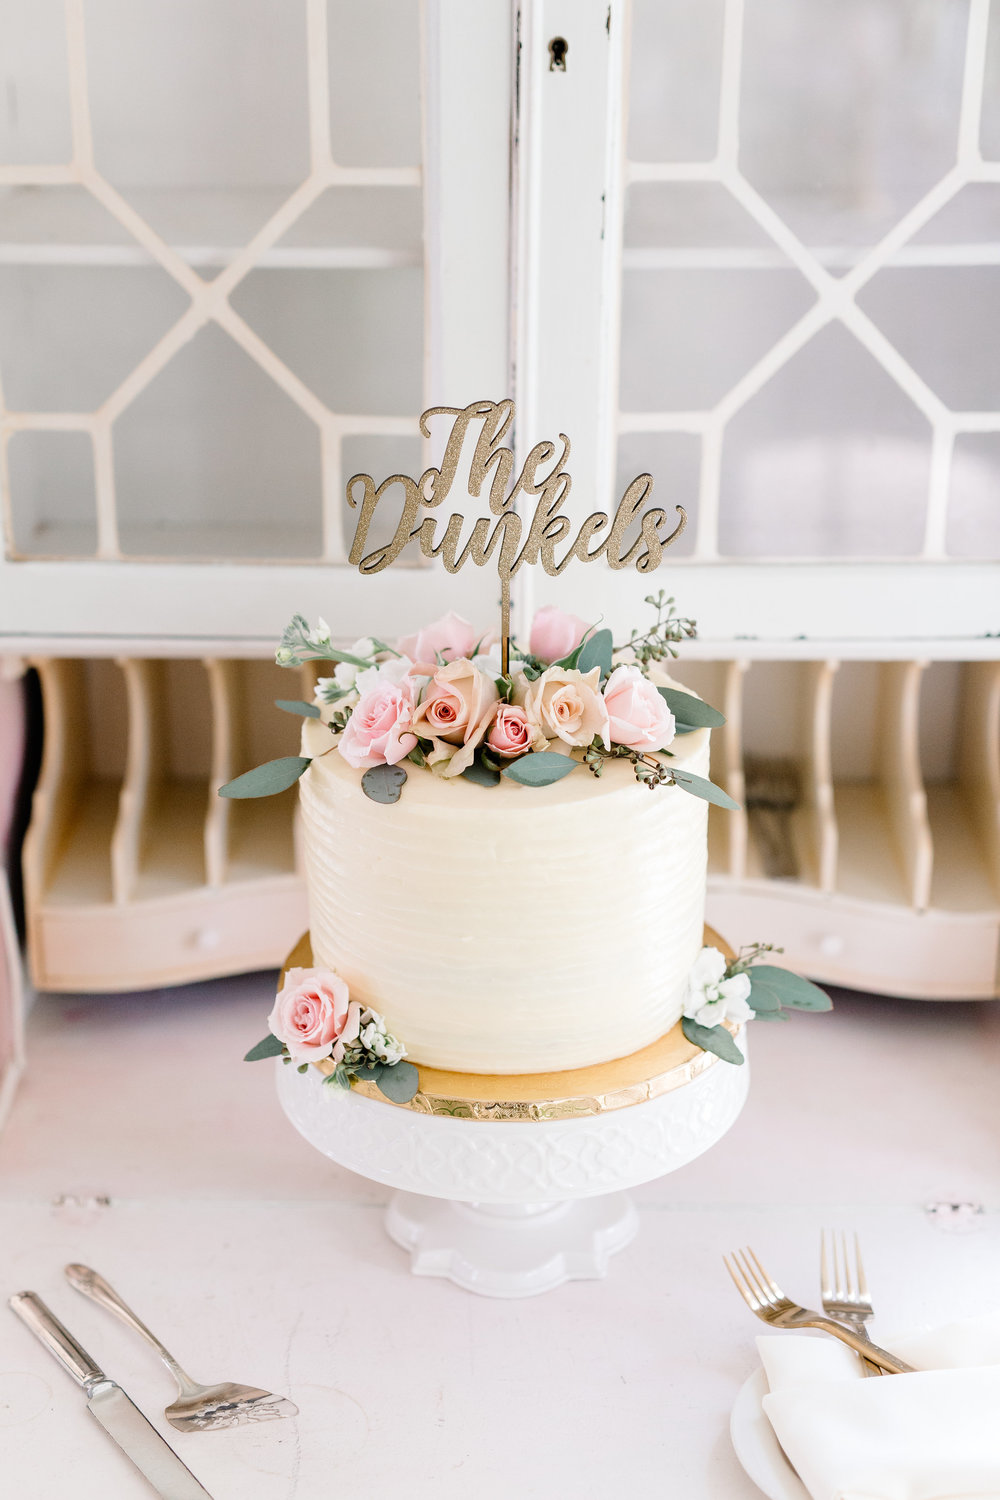 Blush & Gold Wedding Cake at Cypress Grove Estate House  Orlando Wedding Florist Bluegrass Chic  Orlando Wedding Planner Blue Ribbon Weddings  Orlando Wedding Photographer JP Pratt Photography  Wedding Ceremony at Cypress Grove Estate House  Tented Lakeside Wedding Reception at Cypress Grove Estate House